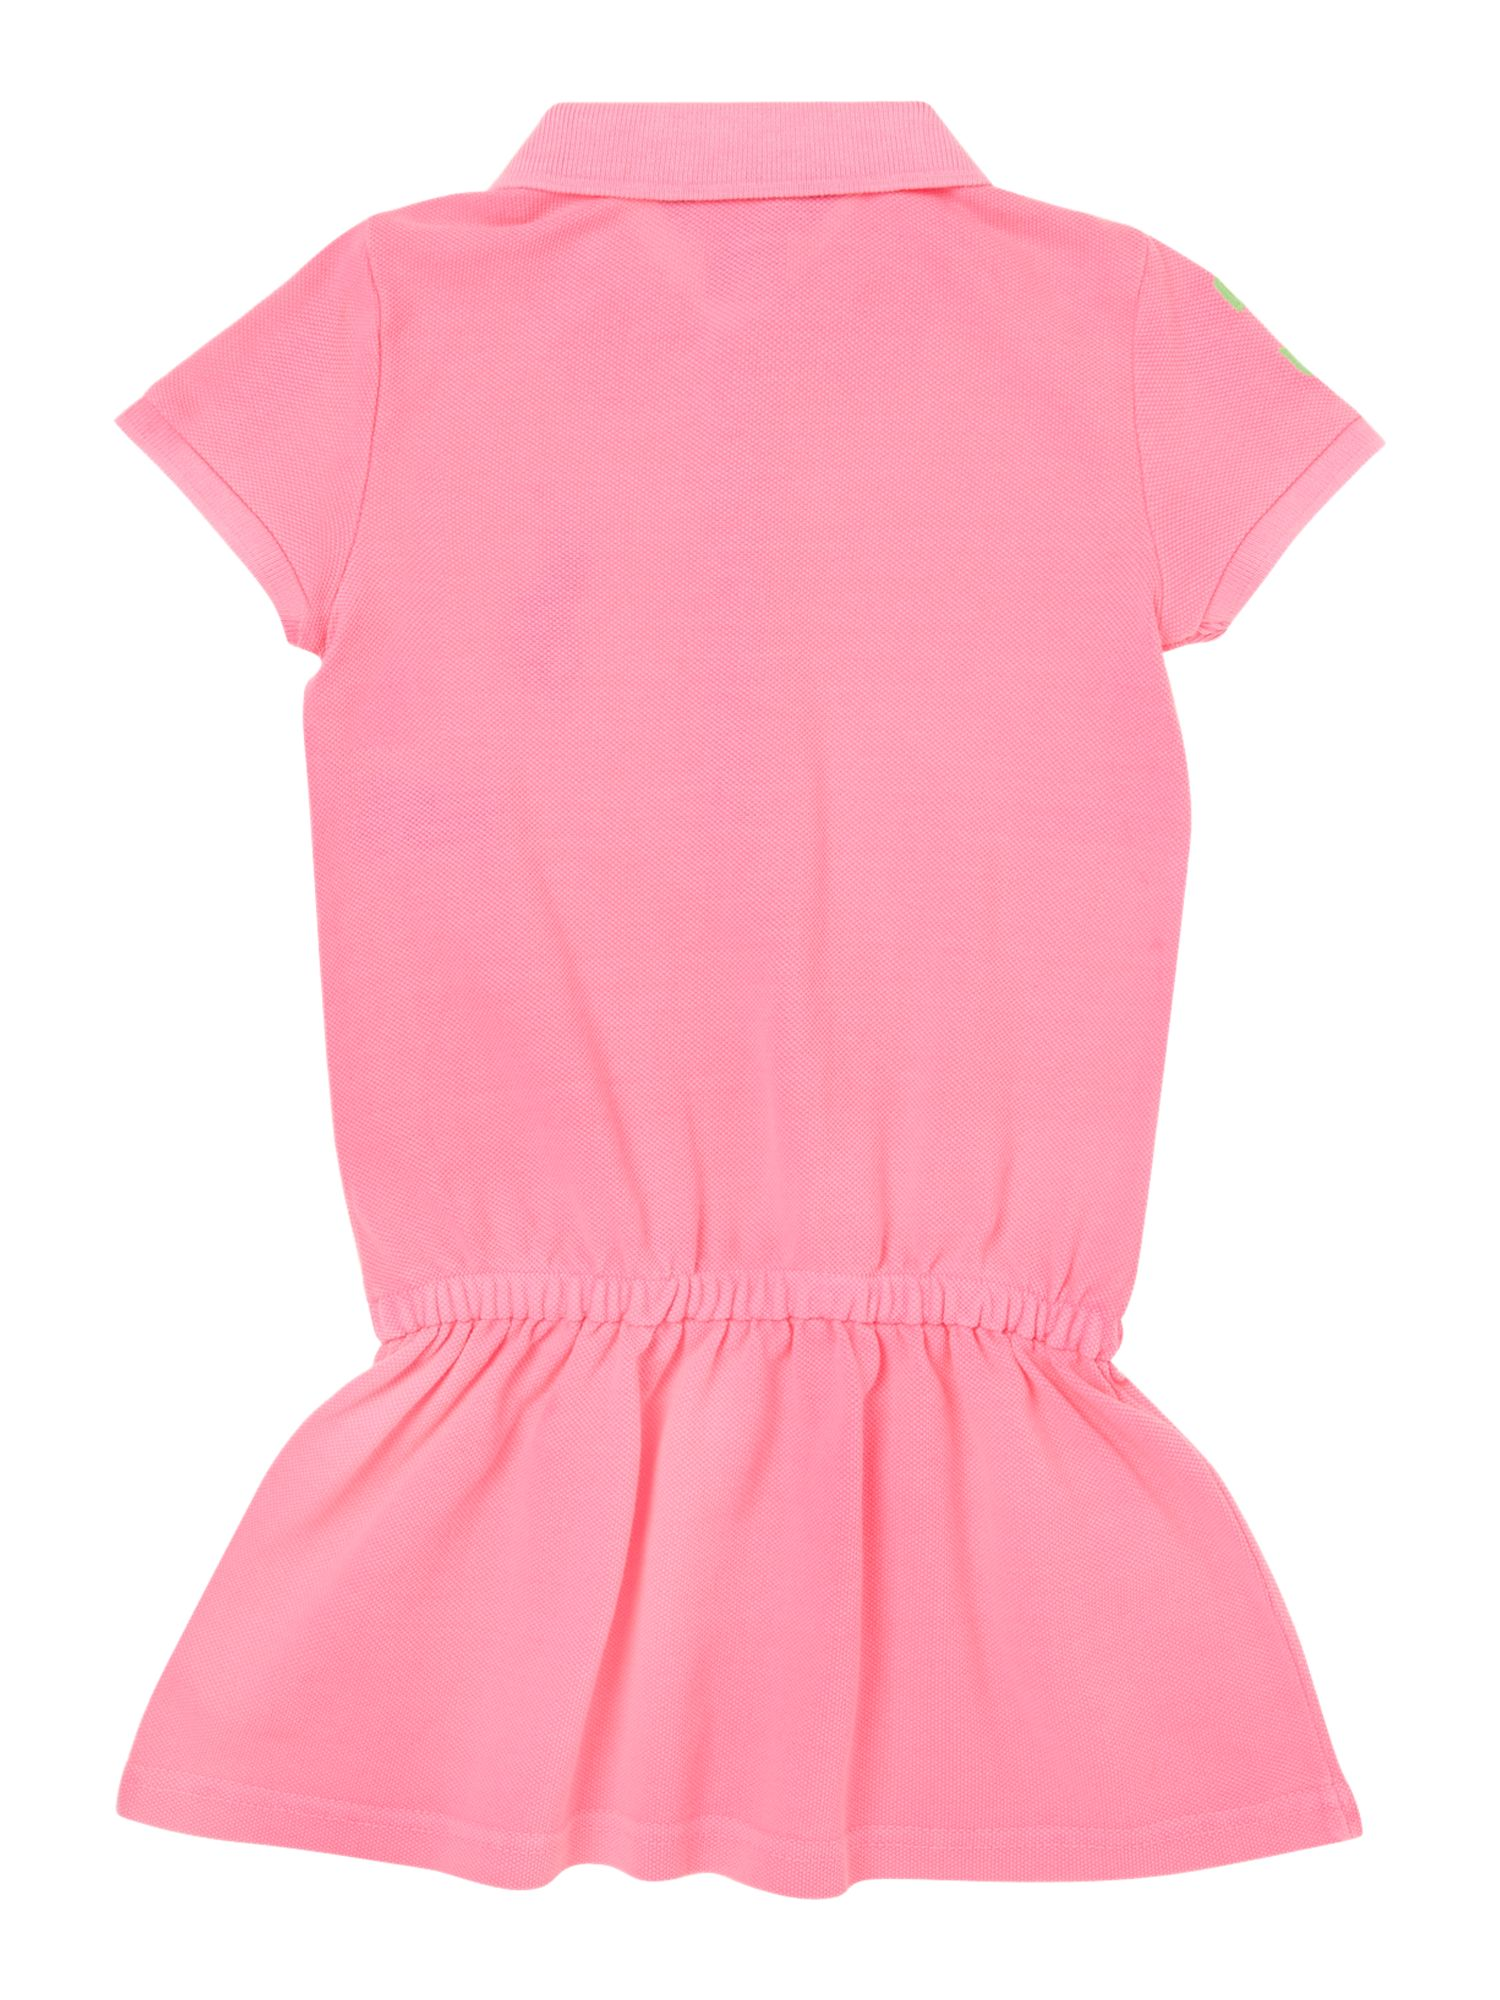 Girls big pony polo dress